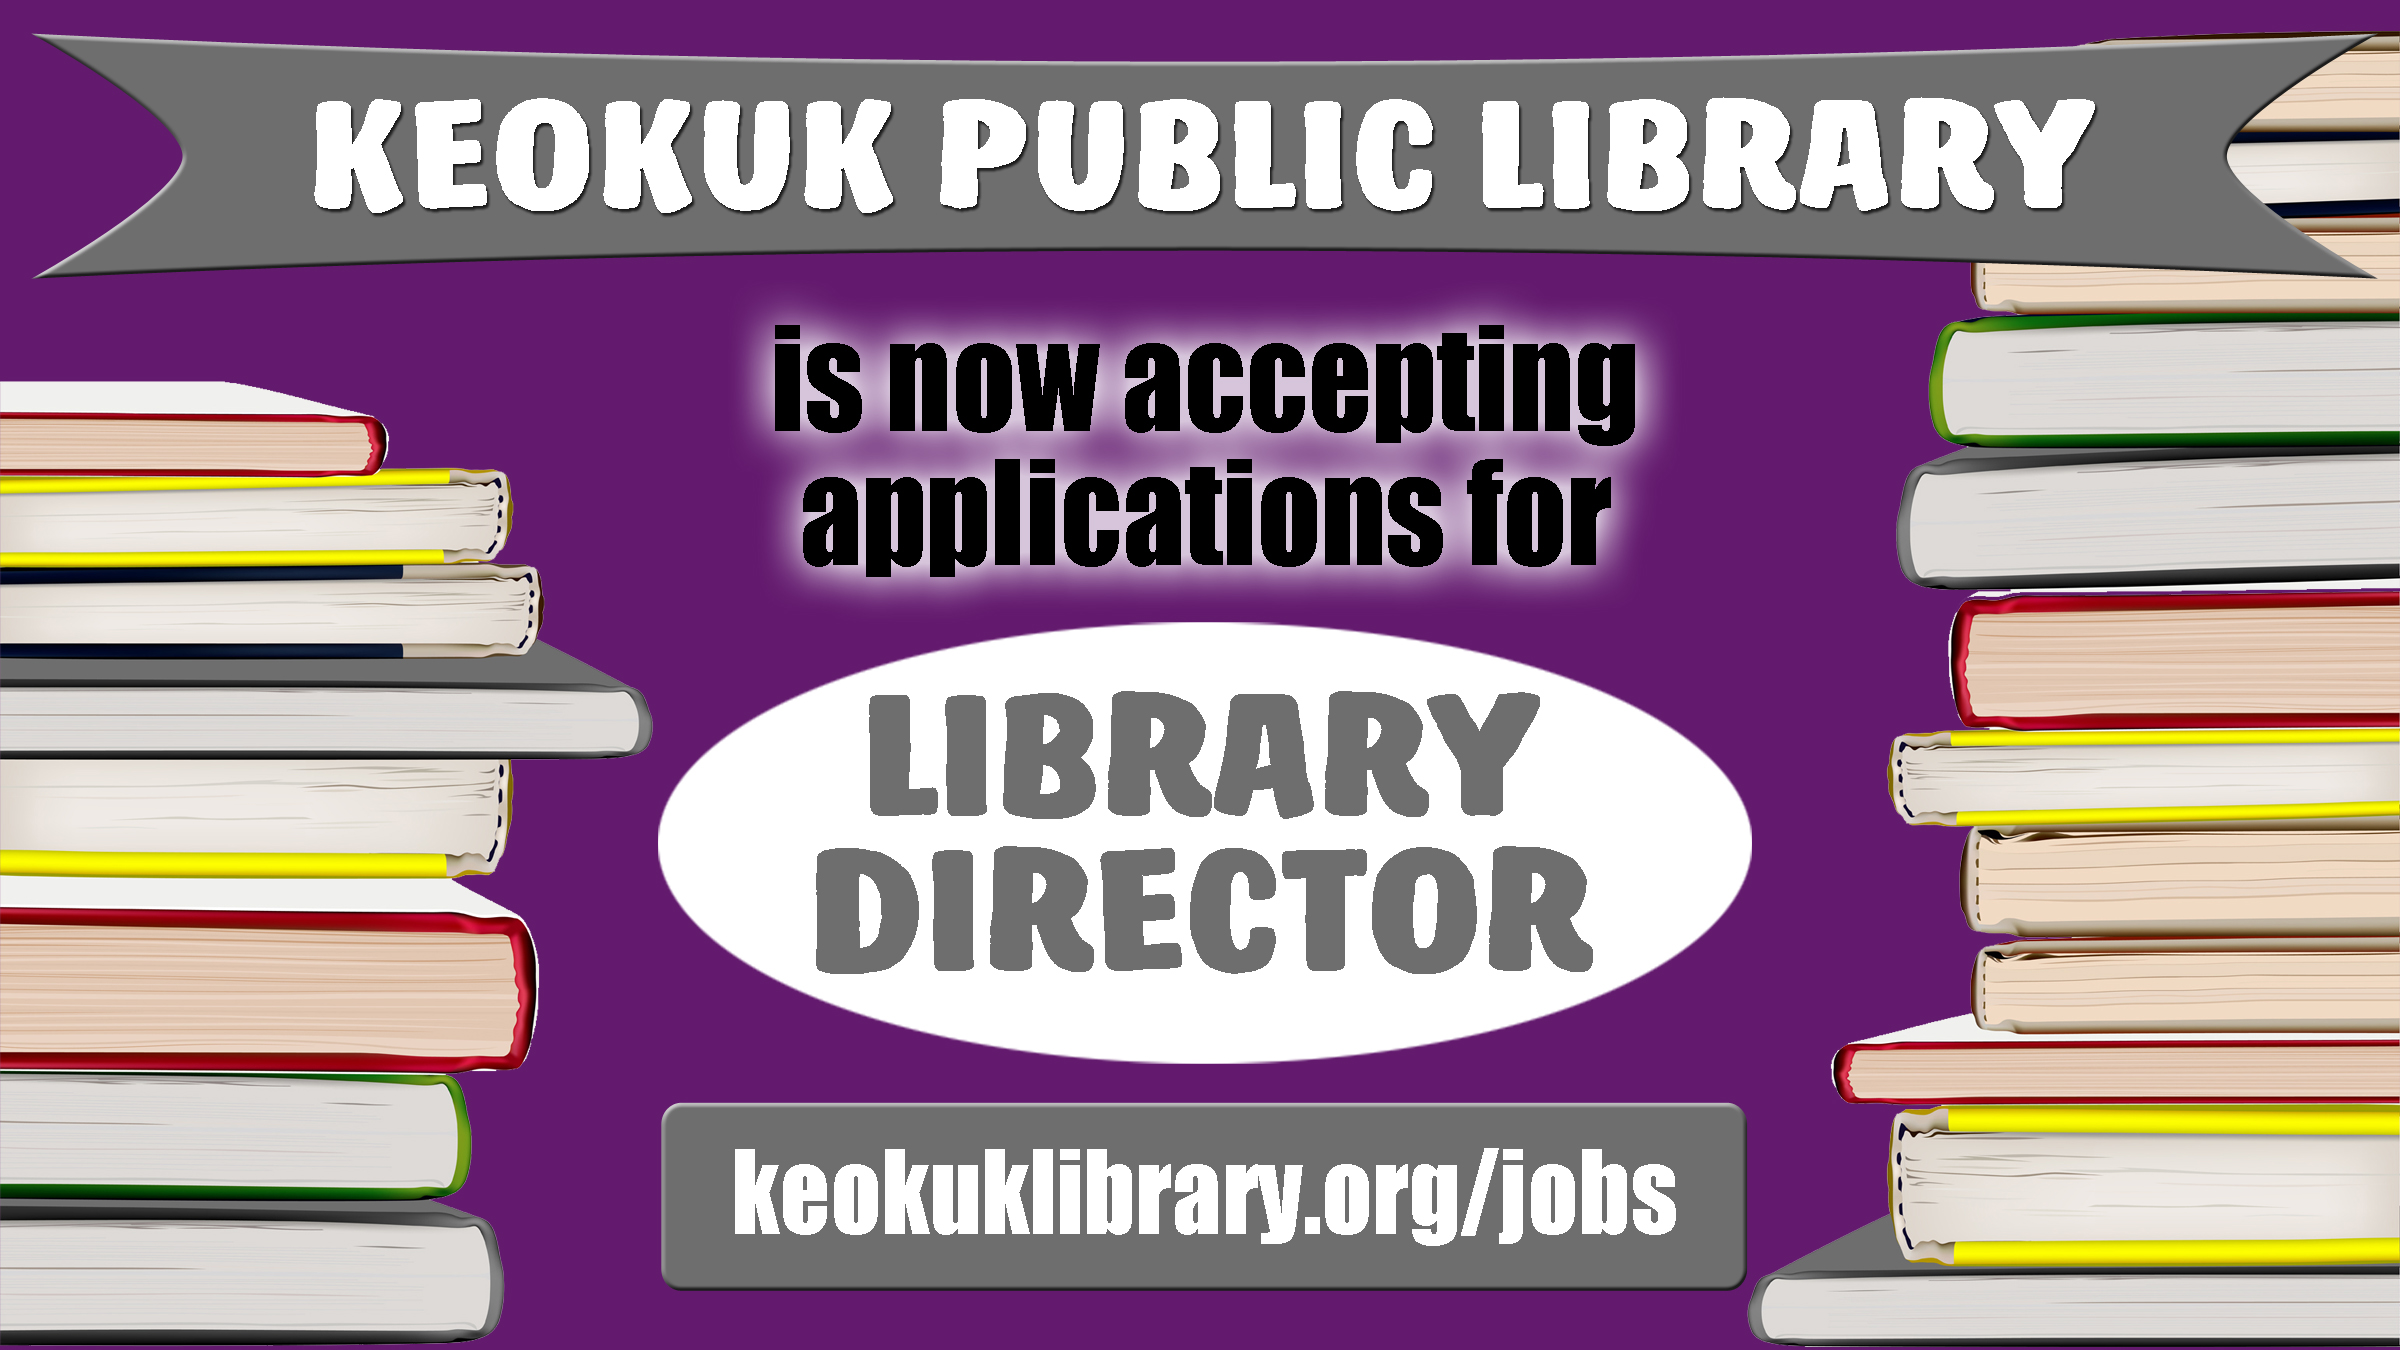 KPL is now accepting applications for Library Director, until the position is filled.